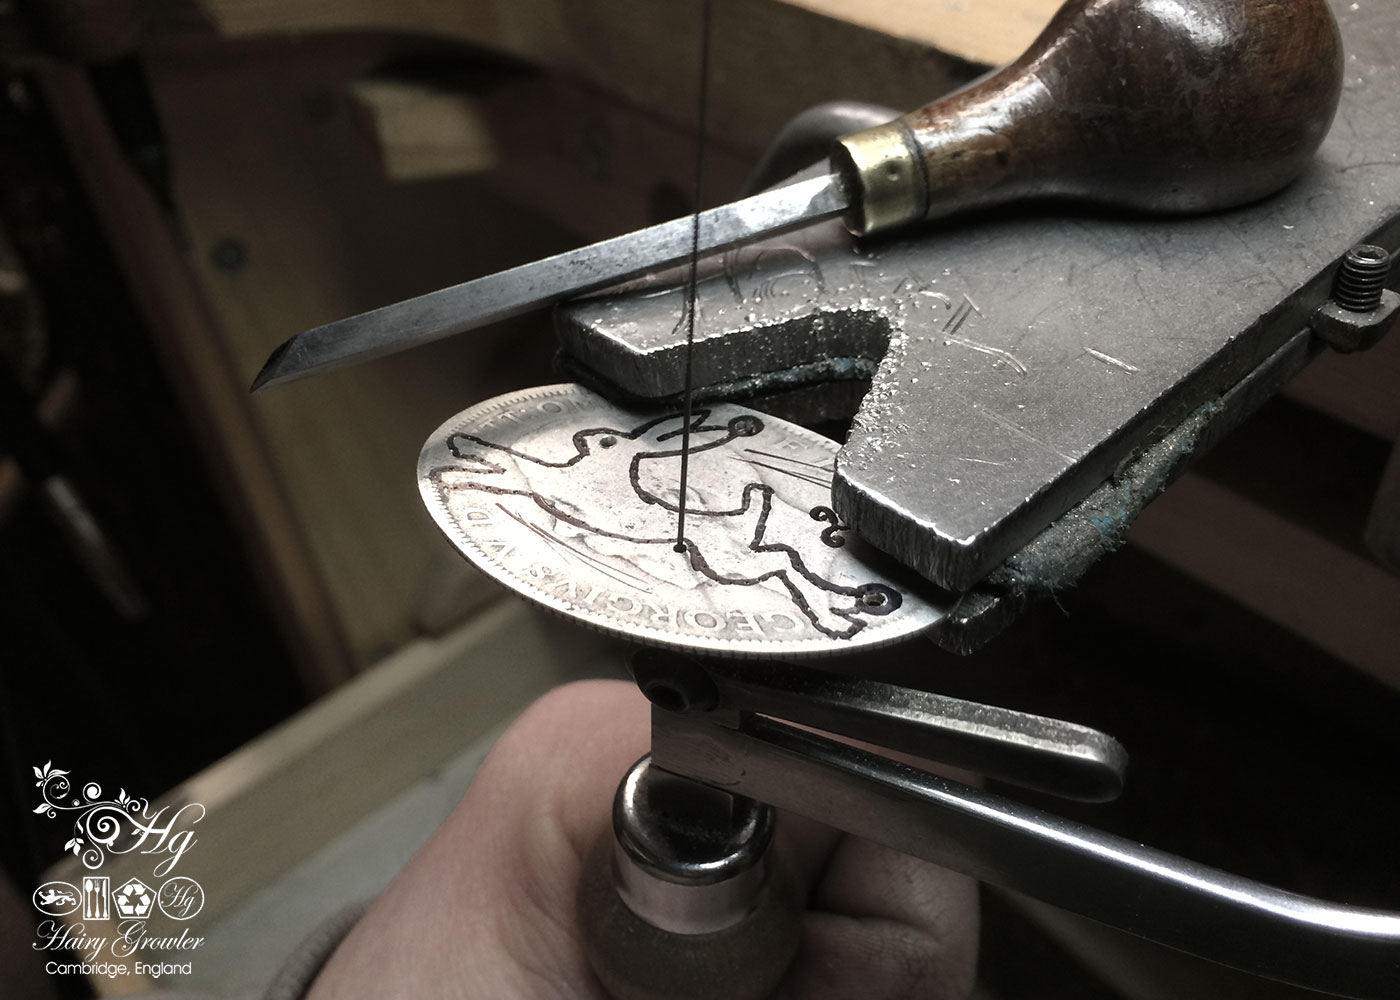 contemporary handmade artisan and upcycled sterling silver magical leaping hare necklace being cut out of the silver coin